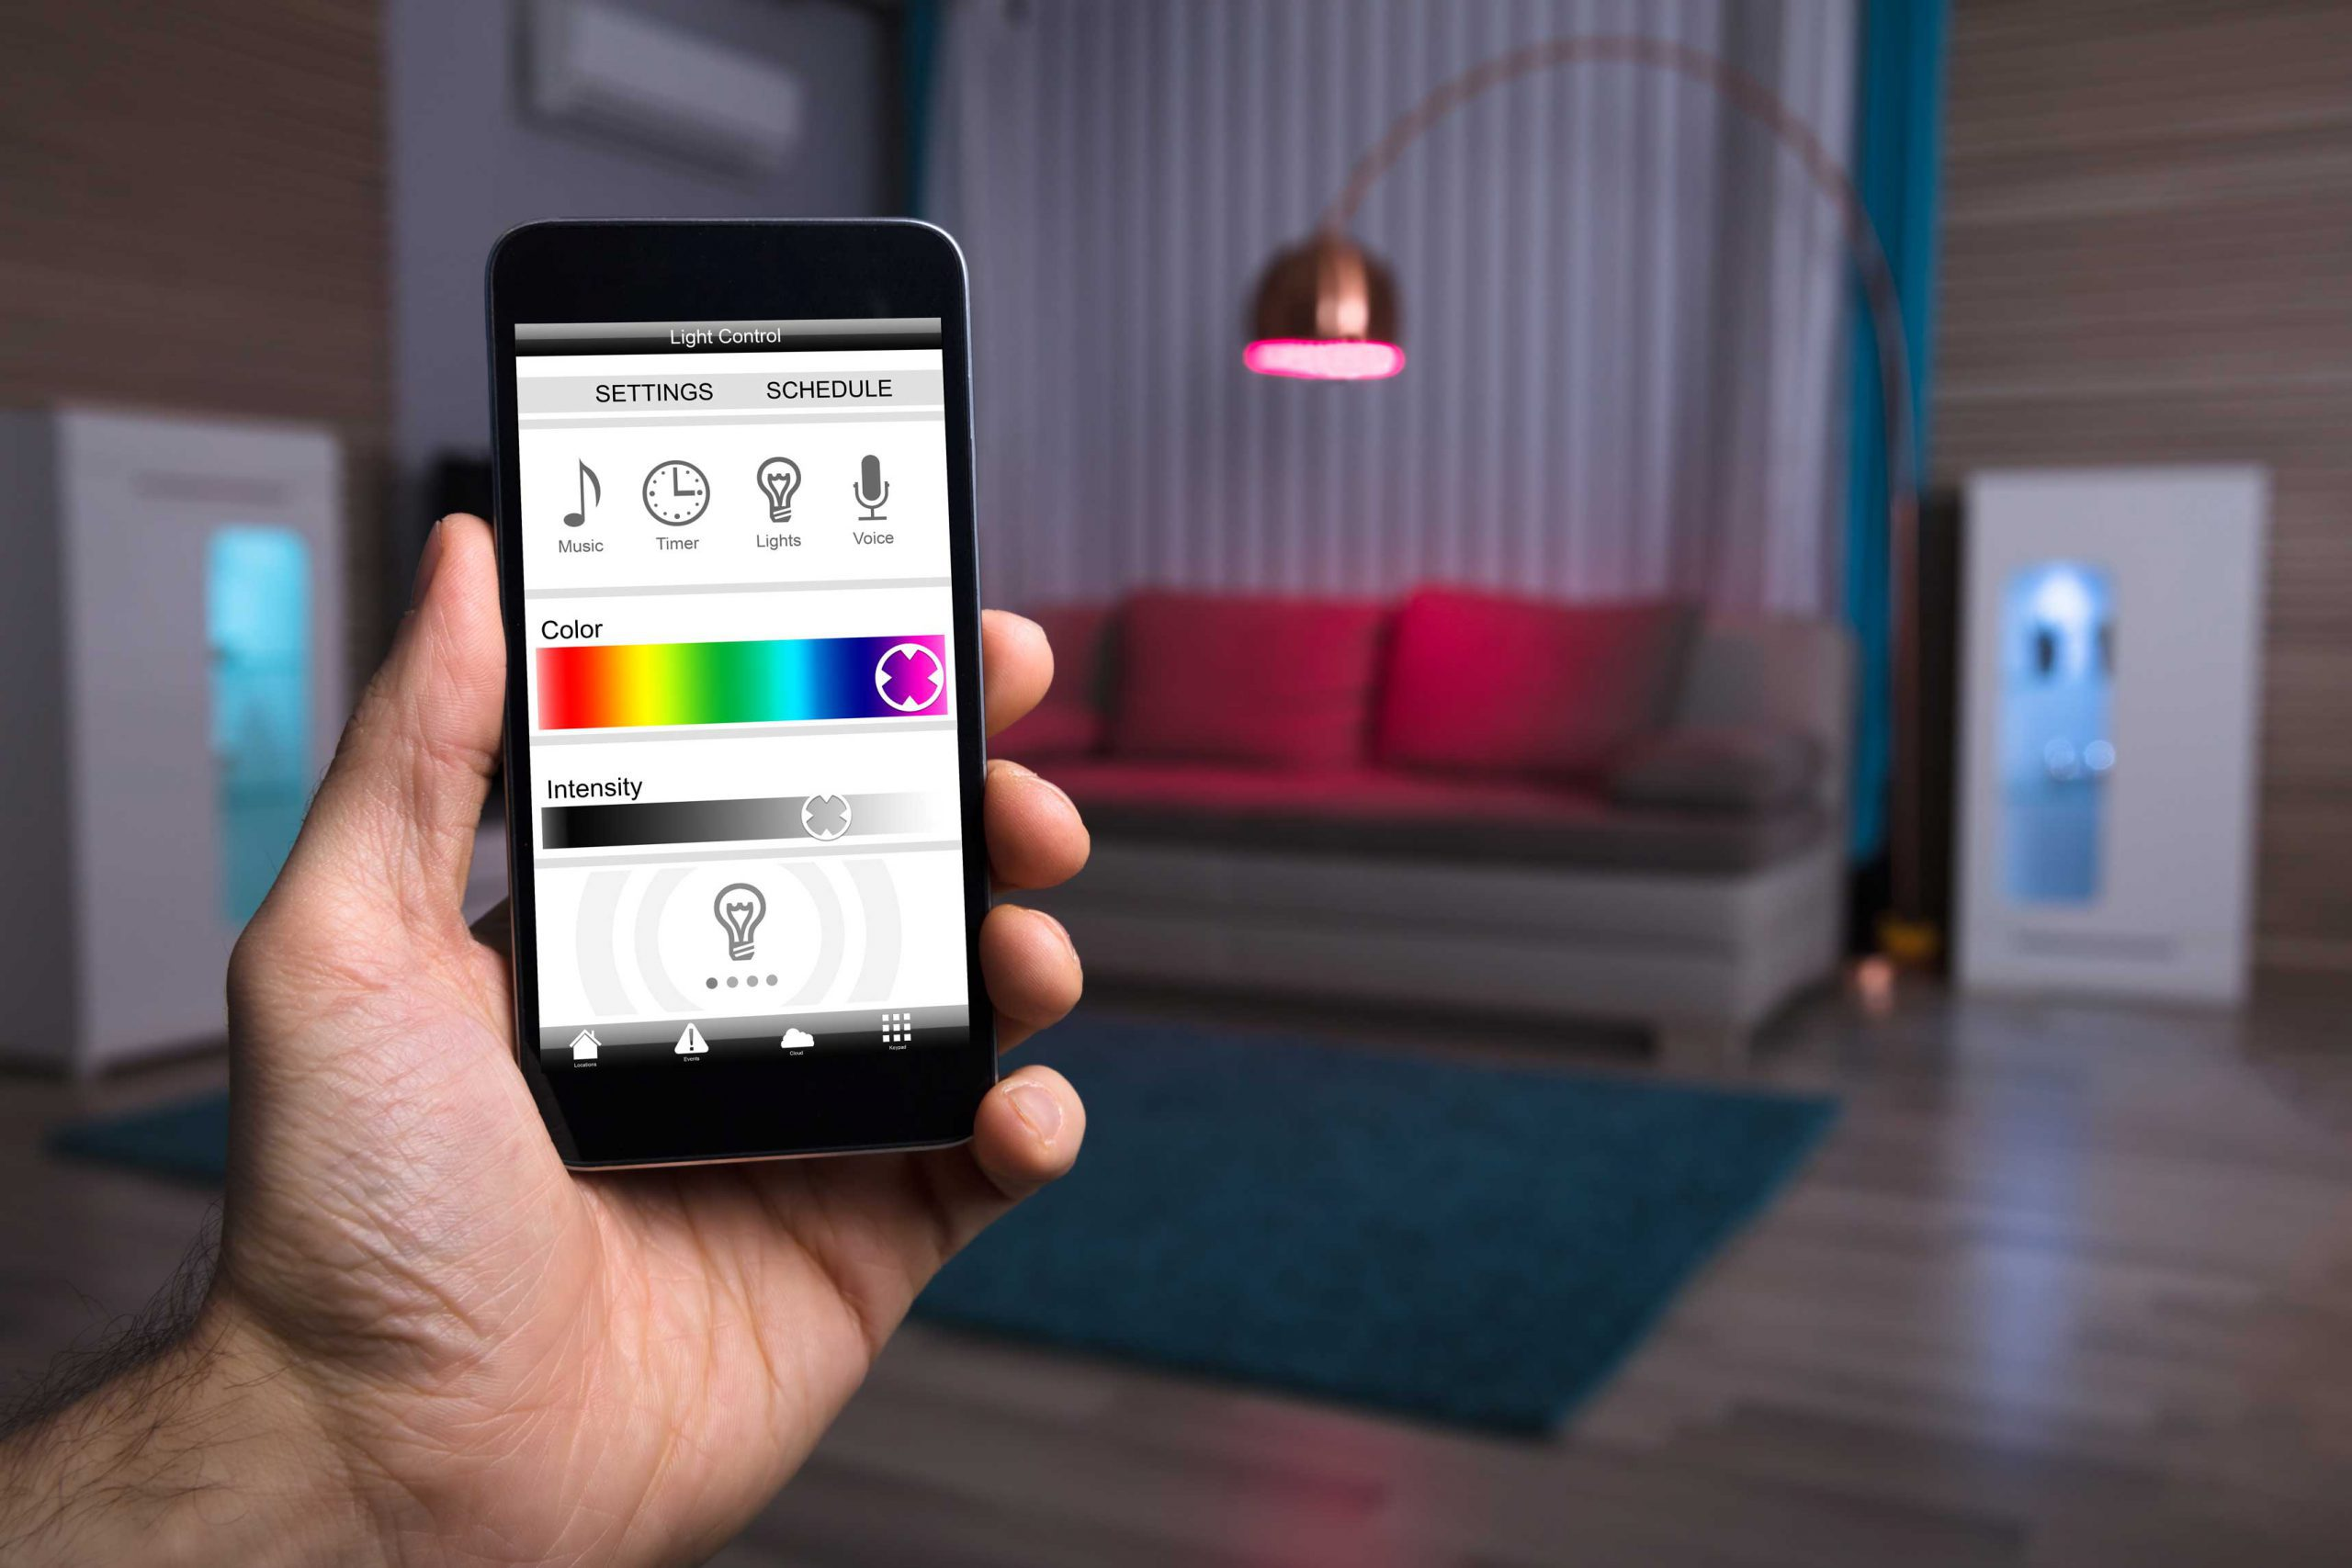 Lights, Action: How To Set Up A Smart Lighting System That Changes Your Home